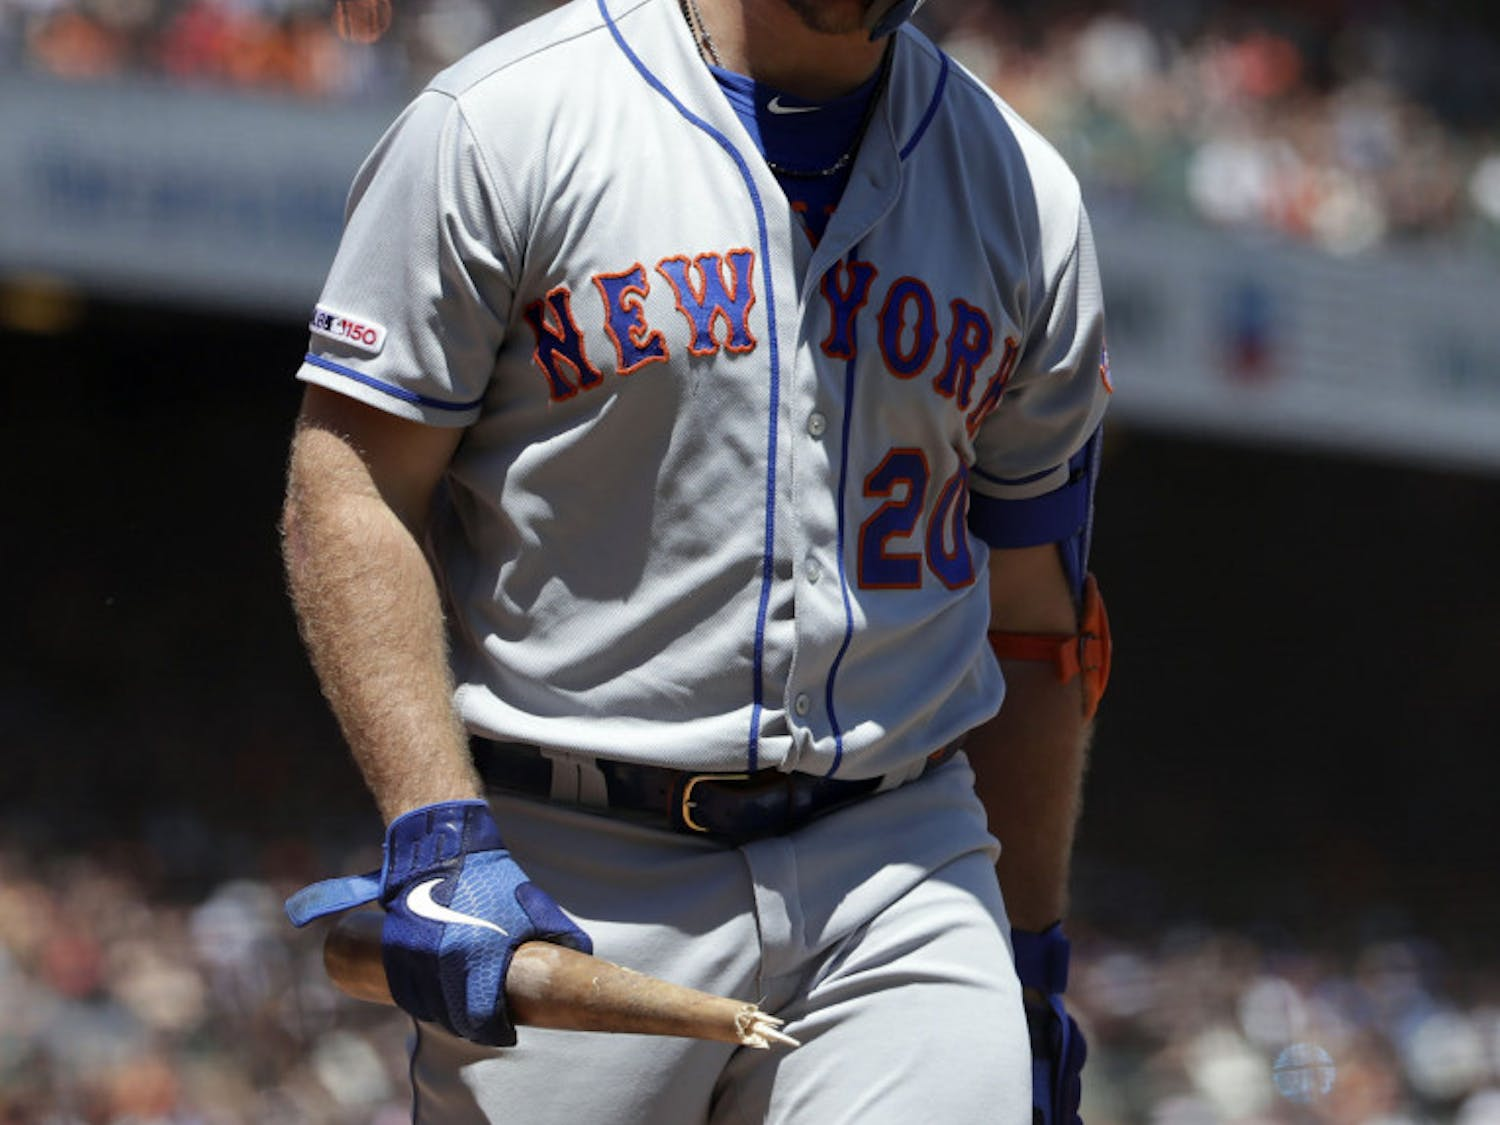 Pete Alonso, one of the few bright spots of this Mets season, looks down in frustration after striking out earlier this month.